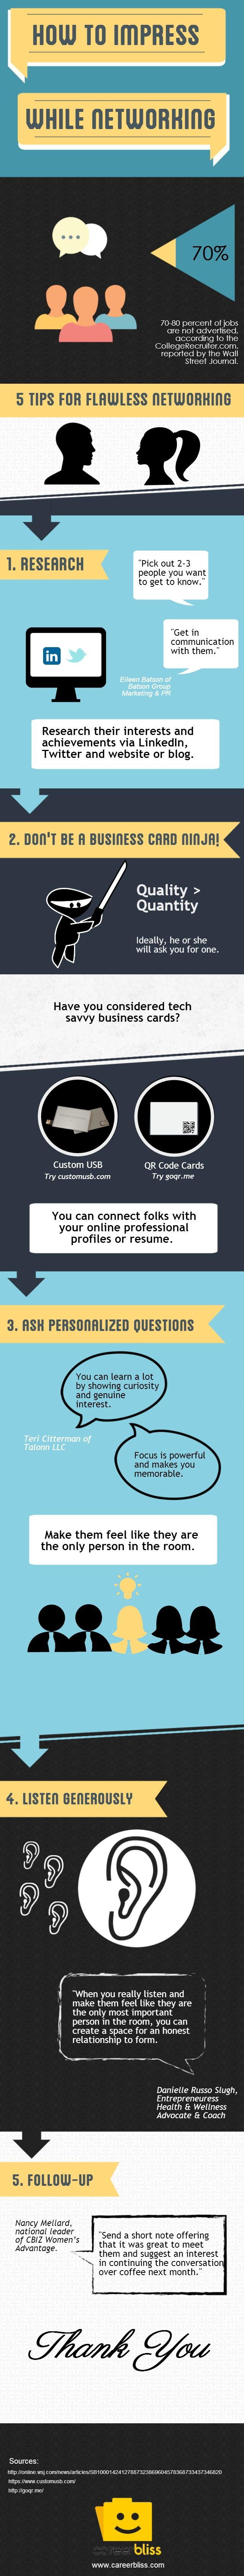 1000 images about job hunting tips